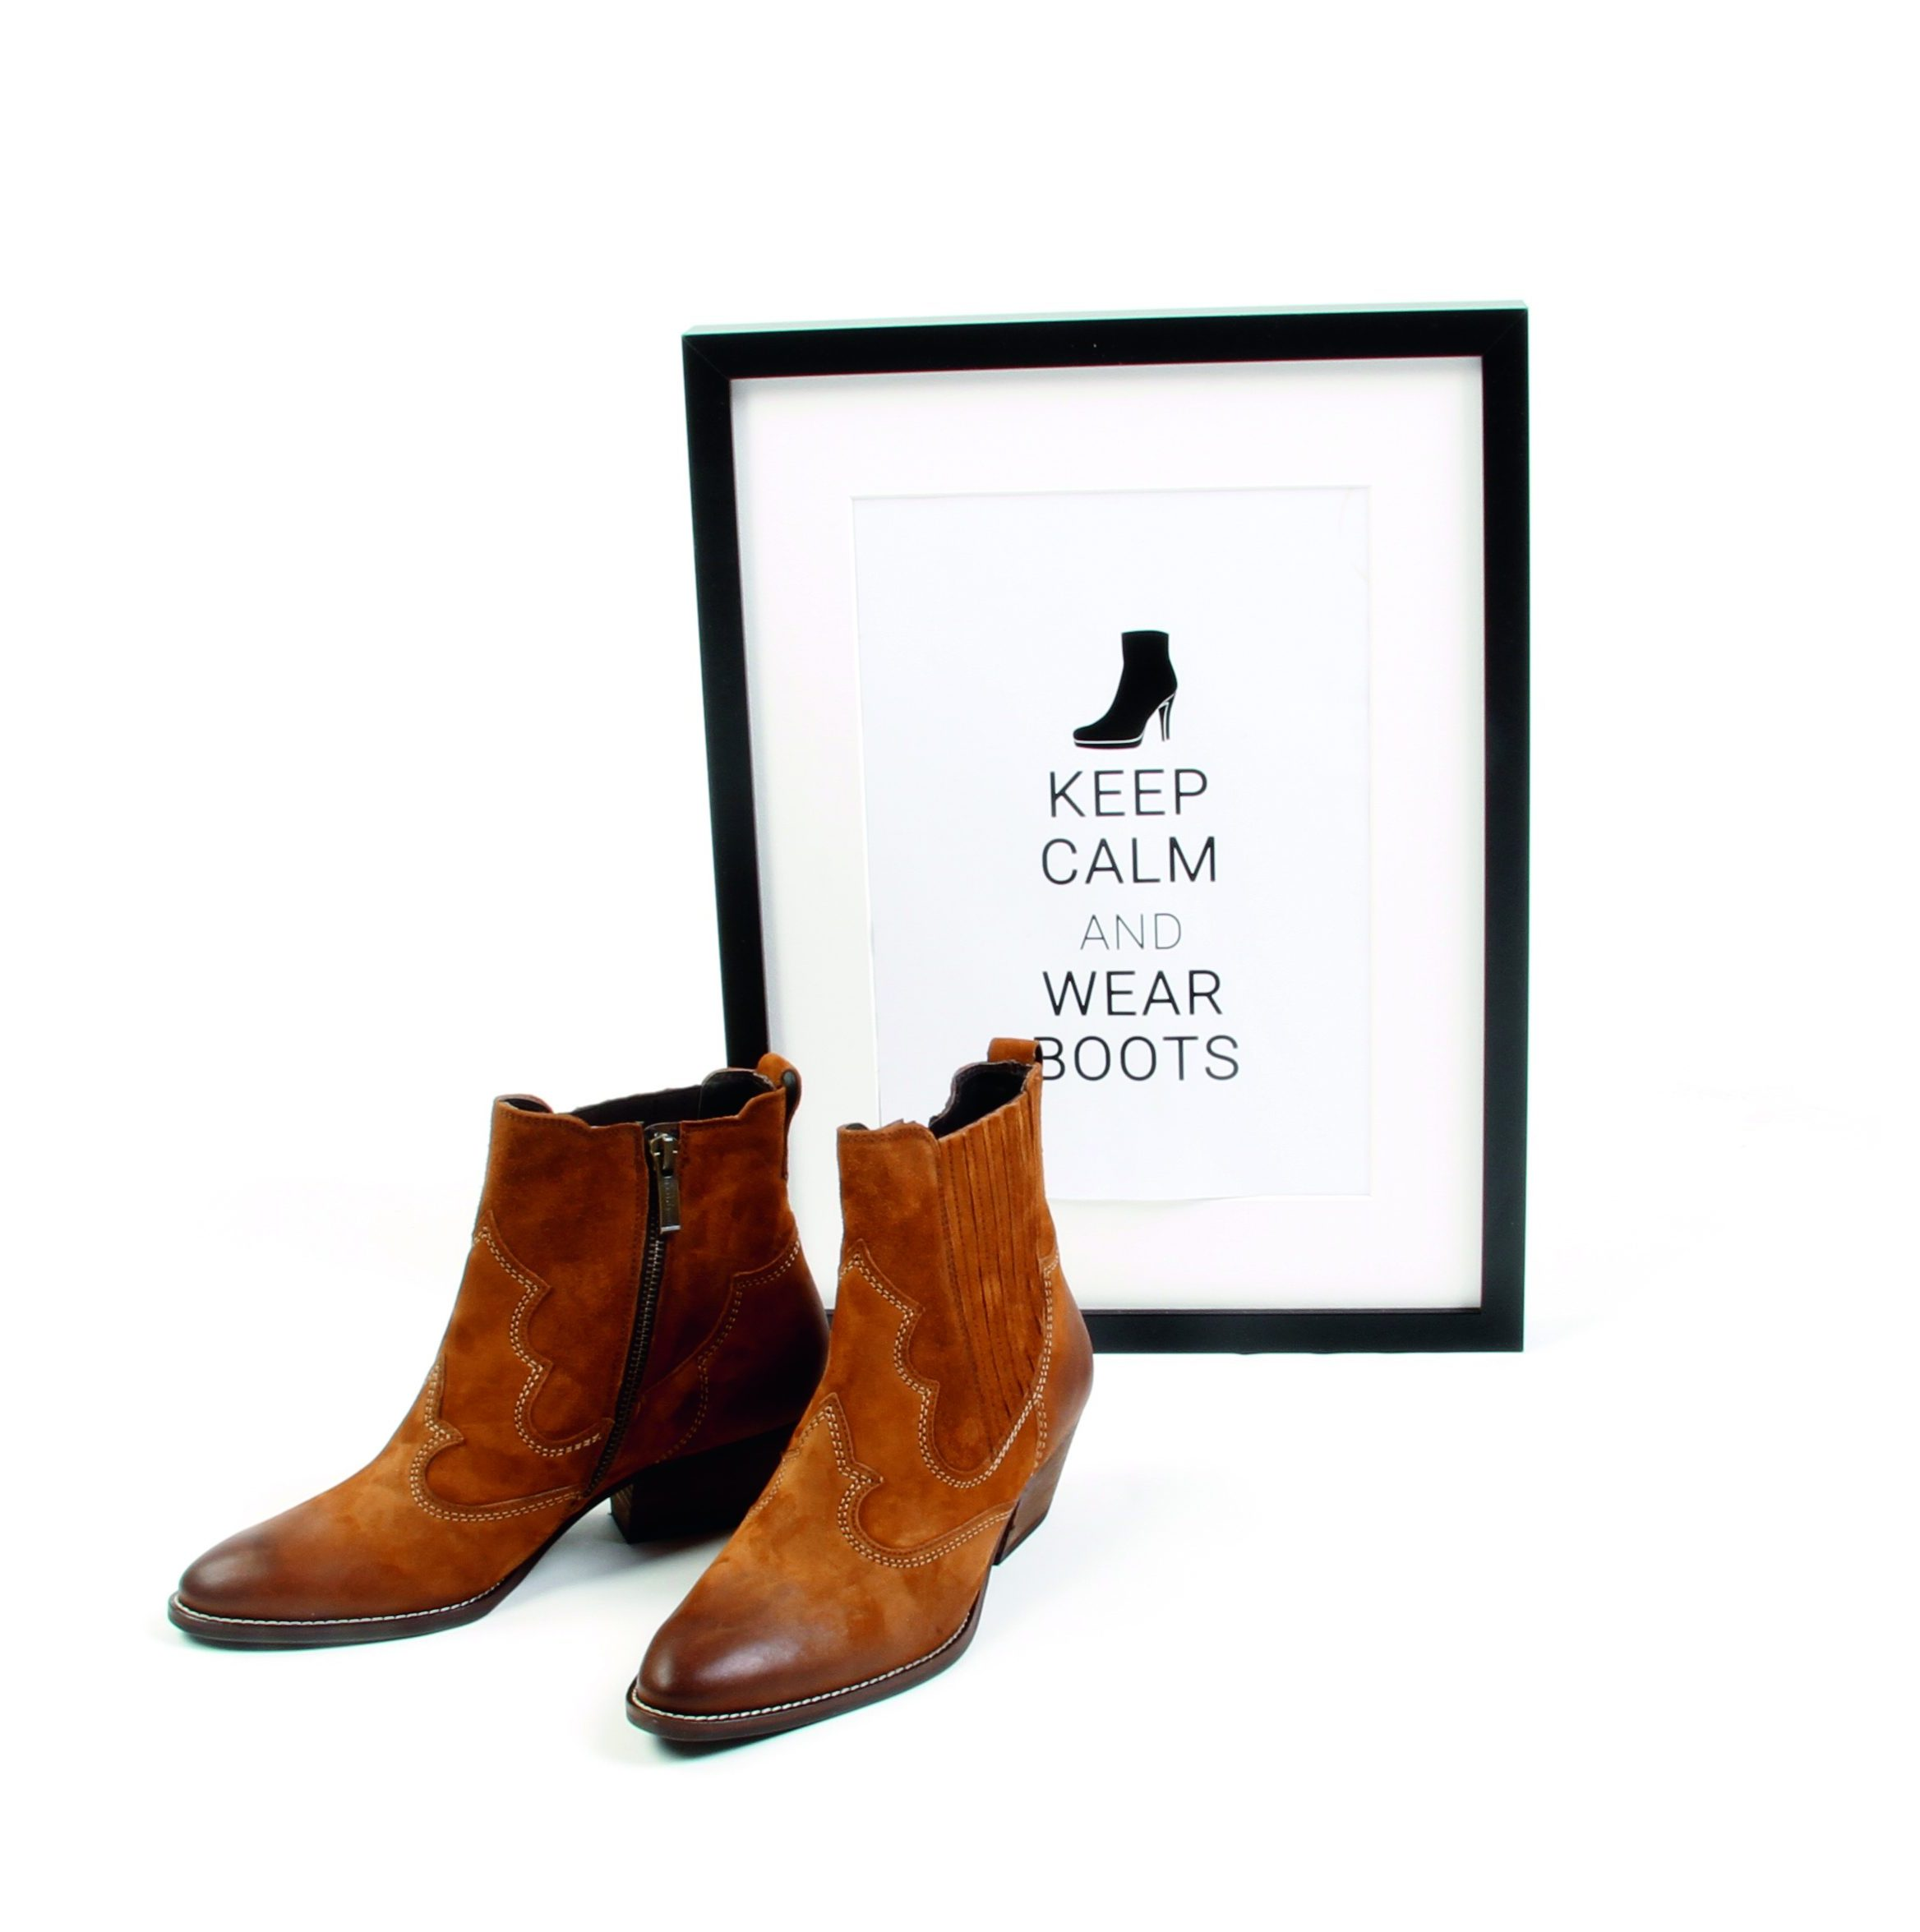 Spruch: Keep Calm And Wear Boots